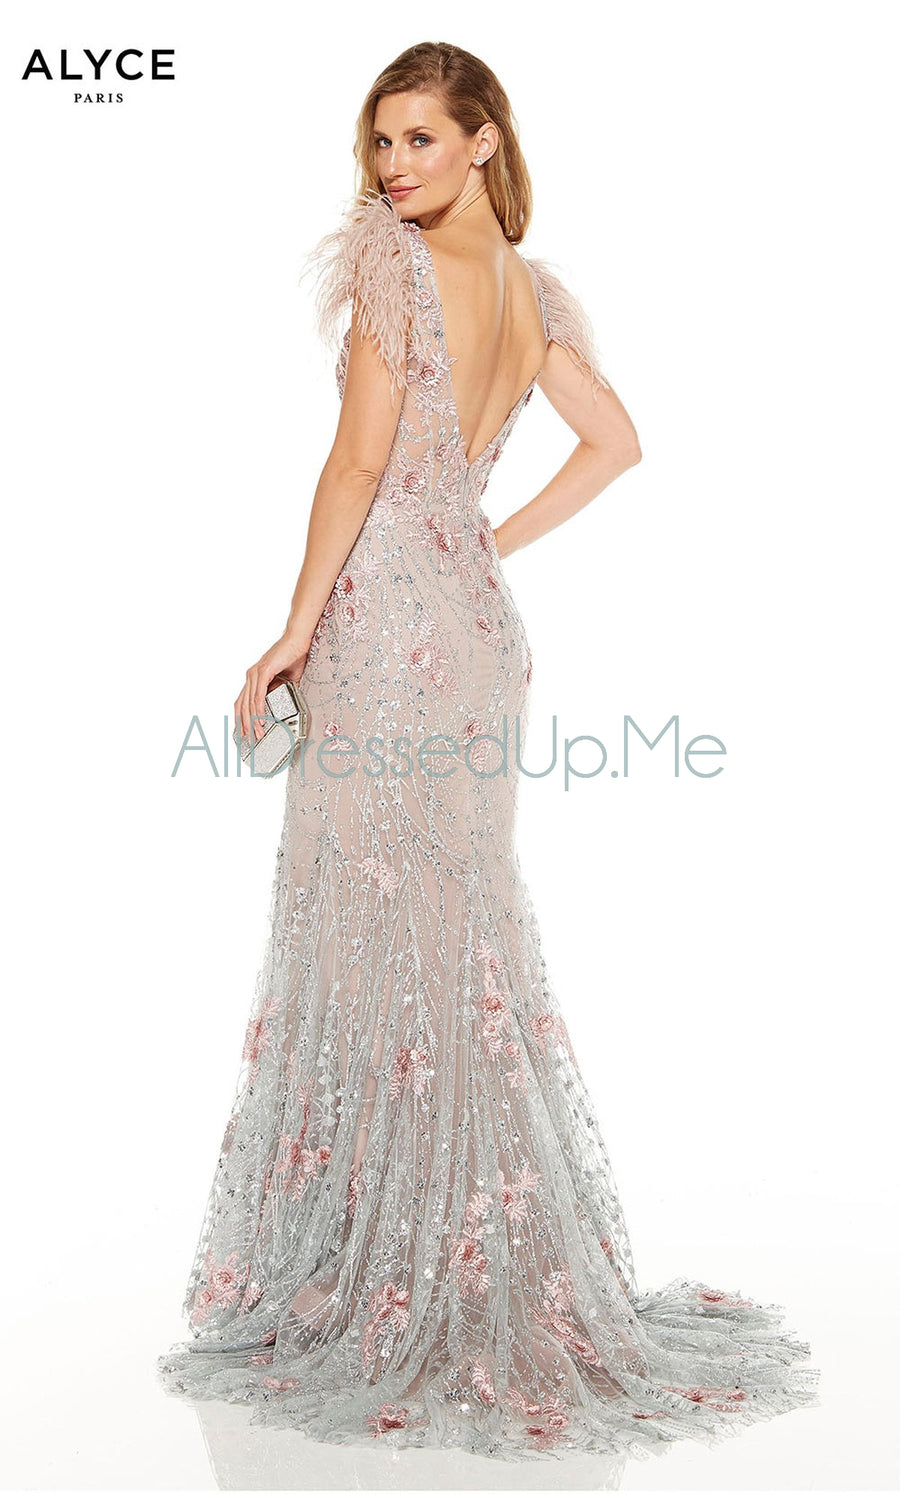 Alyce Paris - 60738 - All Dressed Up, Prom/Party Dress - - Dresses Two Piece Cut Out Sweetheart Halter Low Back High Neck Print Beaded Chiffon Jersey Fitted Sexy Satin Lace Jeweled Sparkle Shimmer Sleeveless Stunning Gorgeous Modest See Through Transparent Glitter Special Occasions Event Chattanooga Hixson Shops Boutiques Tennessee TN Georgia GA MSRP Lowest Prices Sale Discount